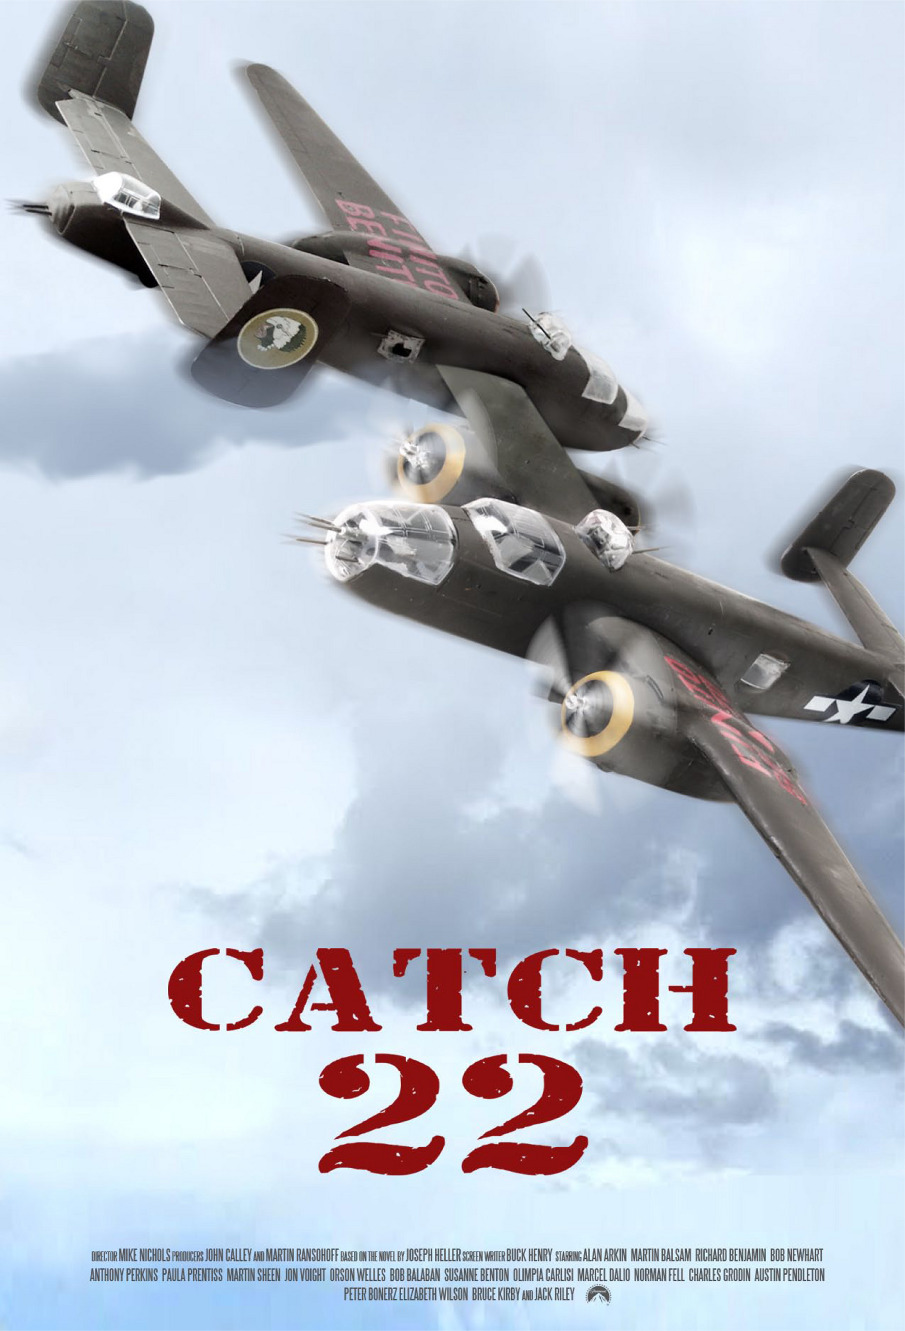 Is the catch 22 movie the same as the book?